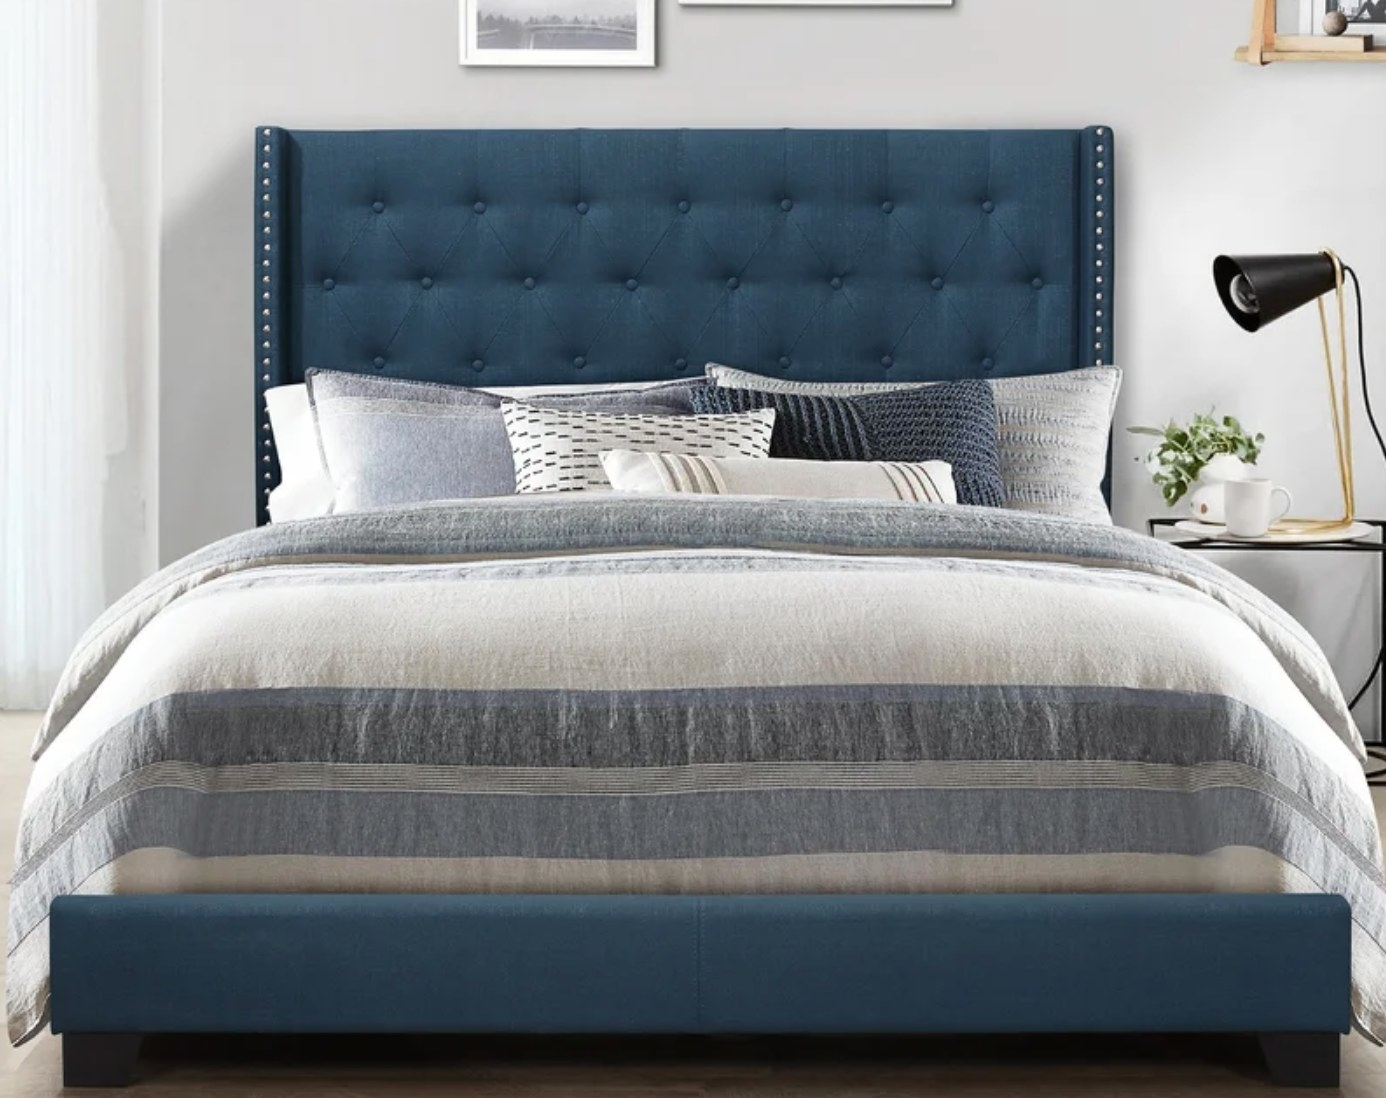 The upholstered bed frame in blue